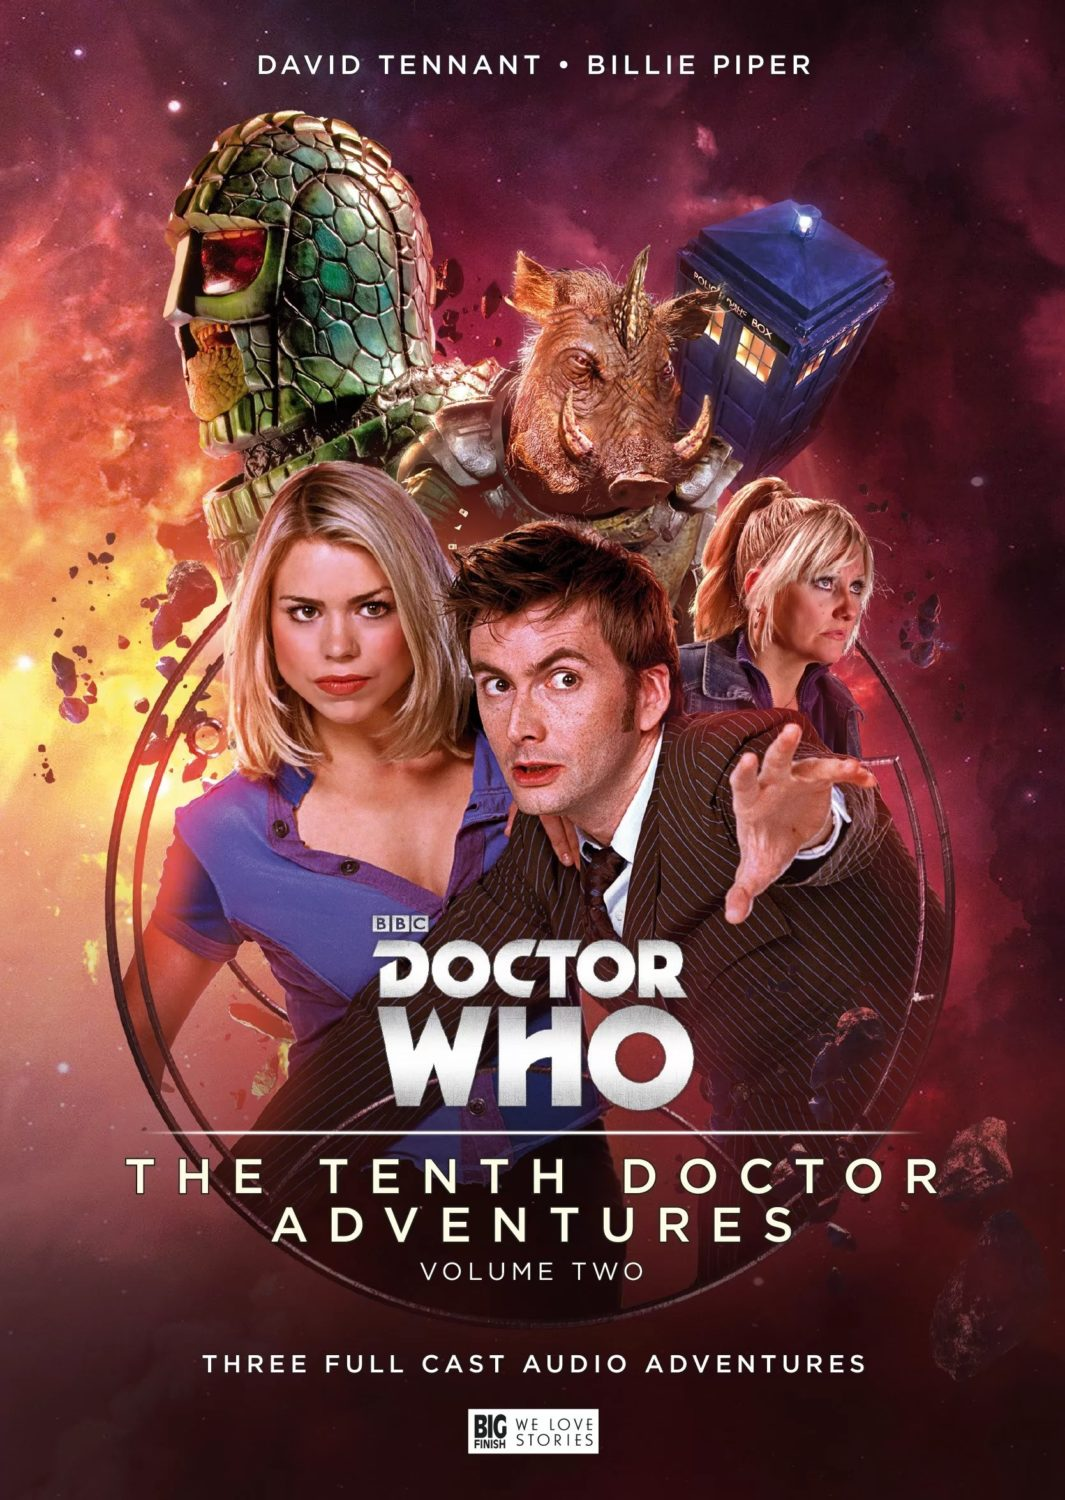 David Tennant's Tenth Doctor & Billie Piper's Rose Tyler